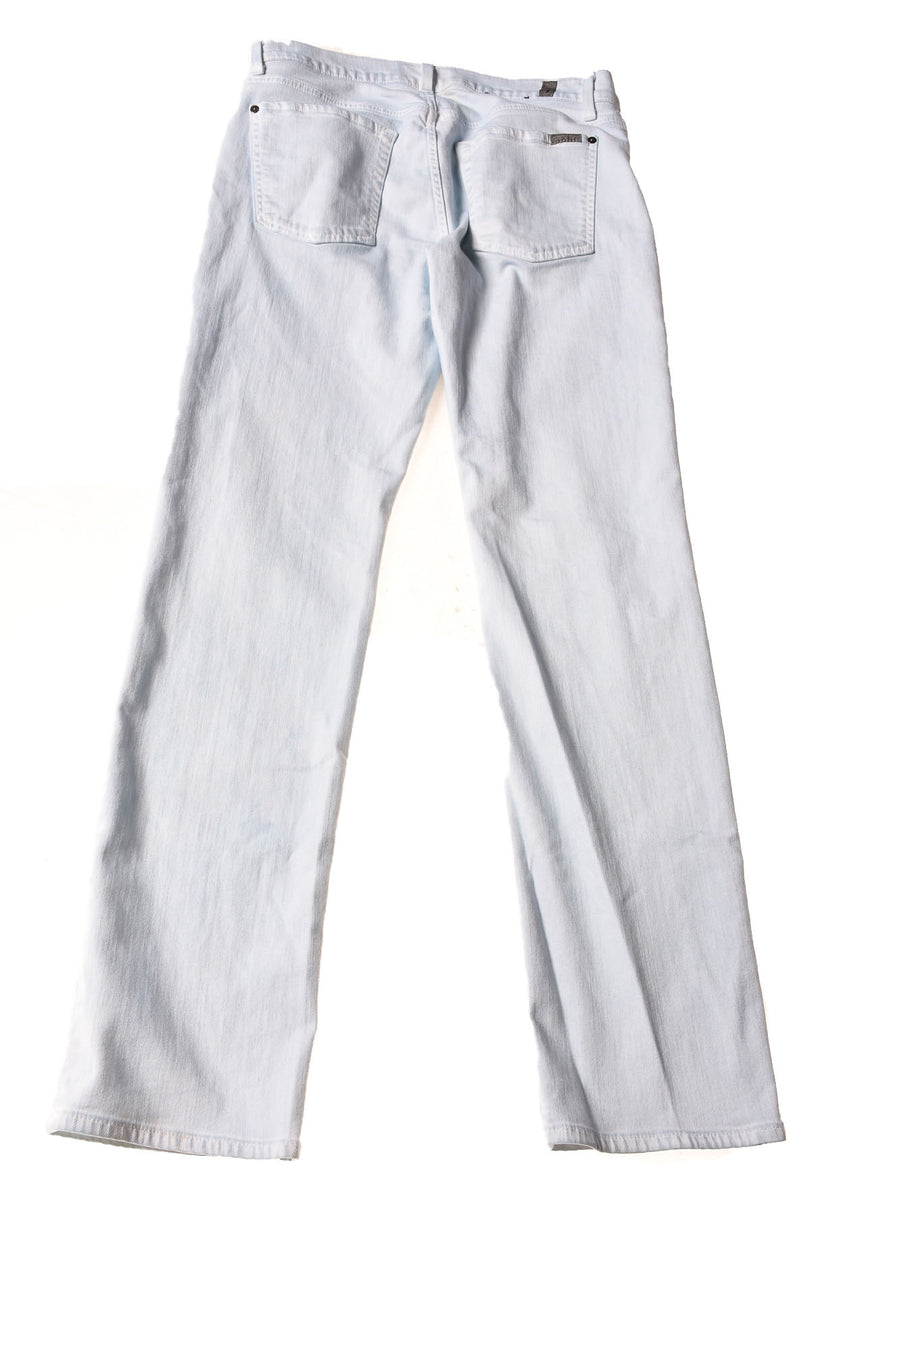 USED 7 For All ManKind Women's Jeans W31 Light Blue